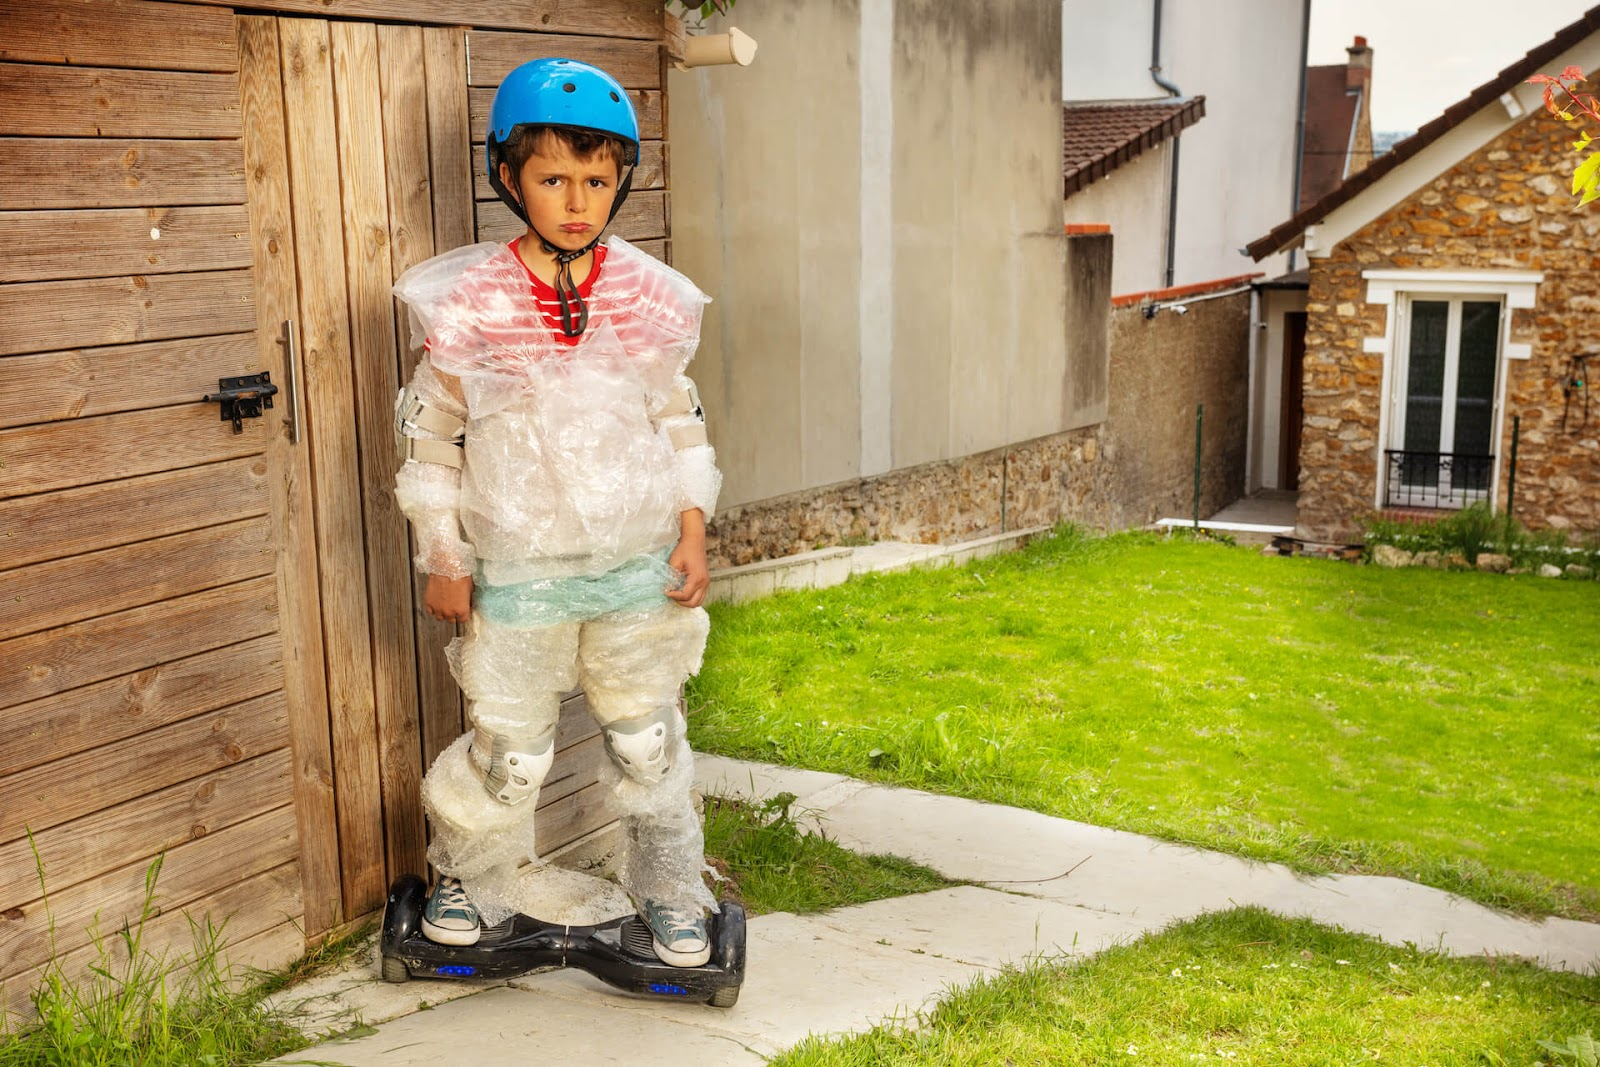 Boy trying to skateboard but covered in bubble wrap